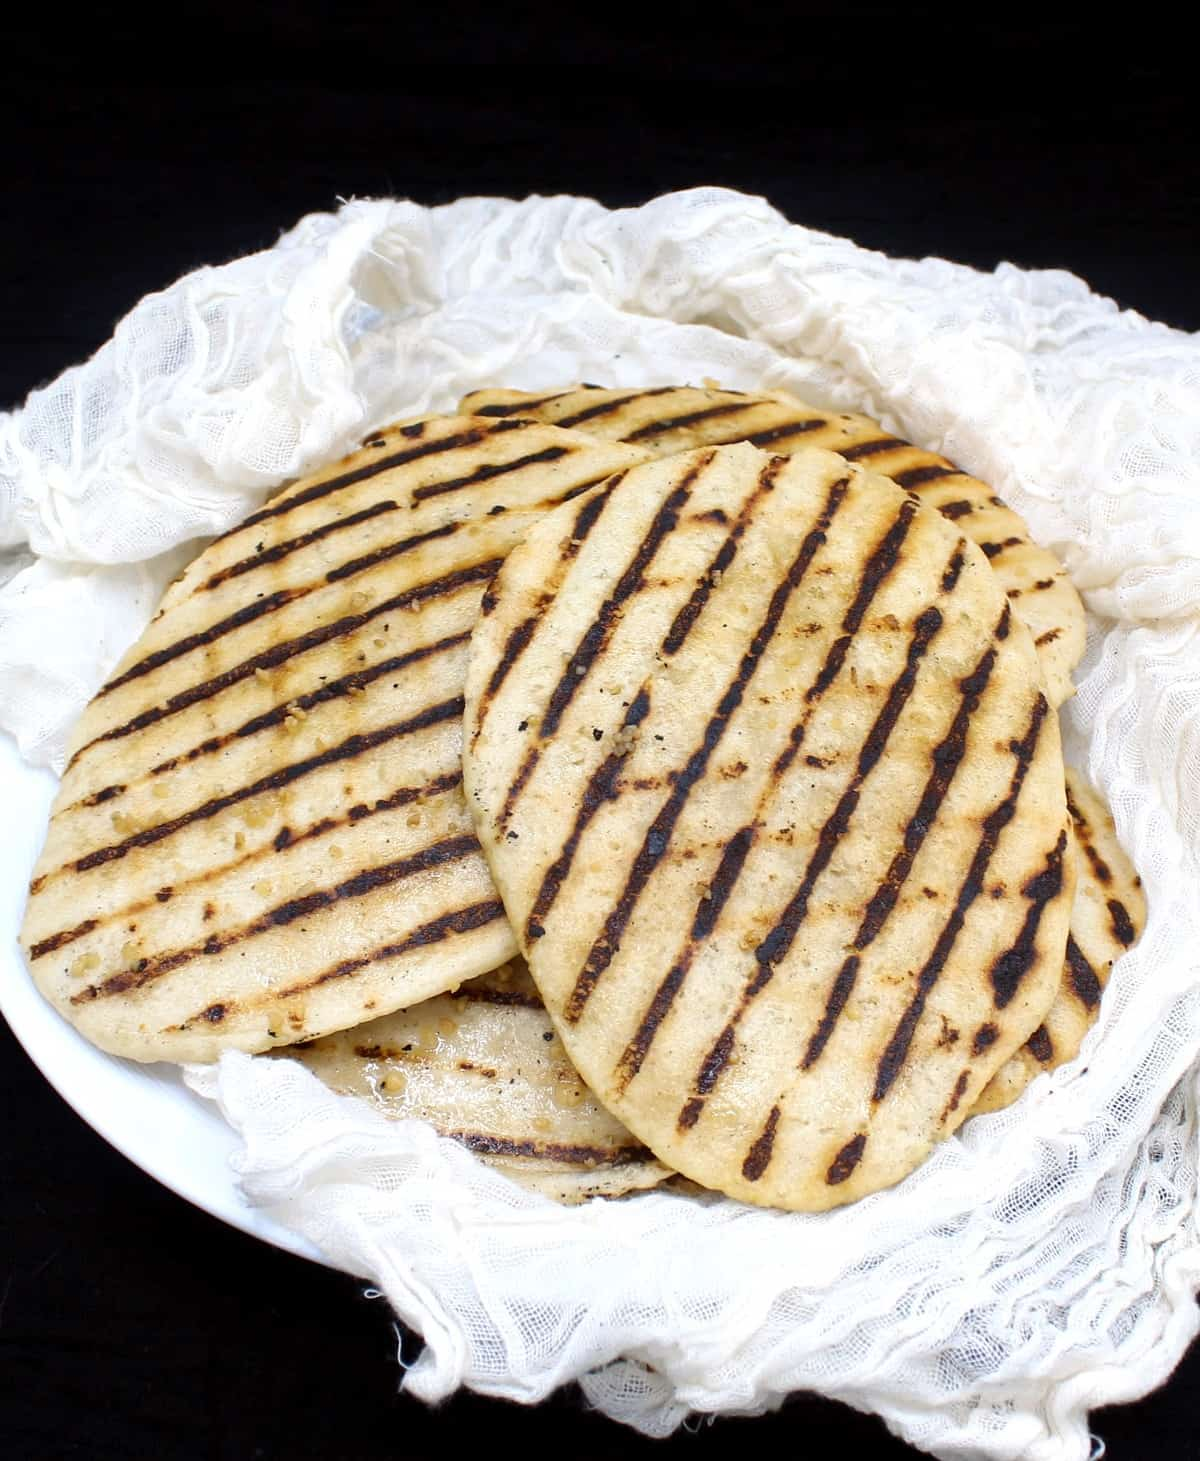 A stack of grilled vegan gluten free naans on a white plate wrapped in cheesecloth on a black background.